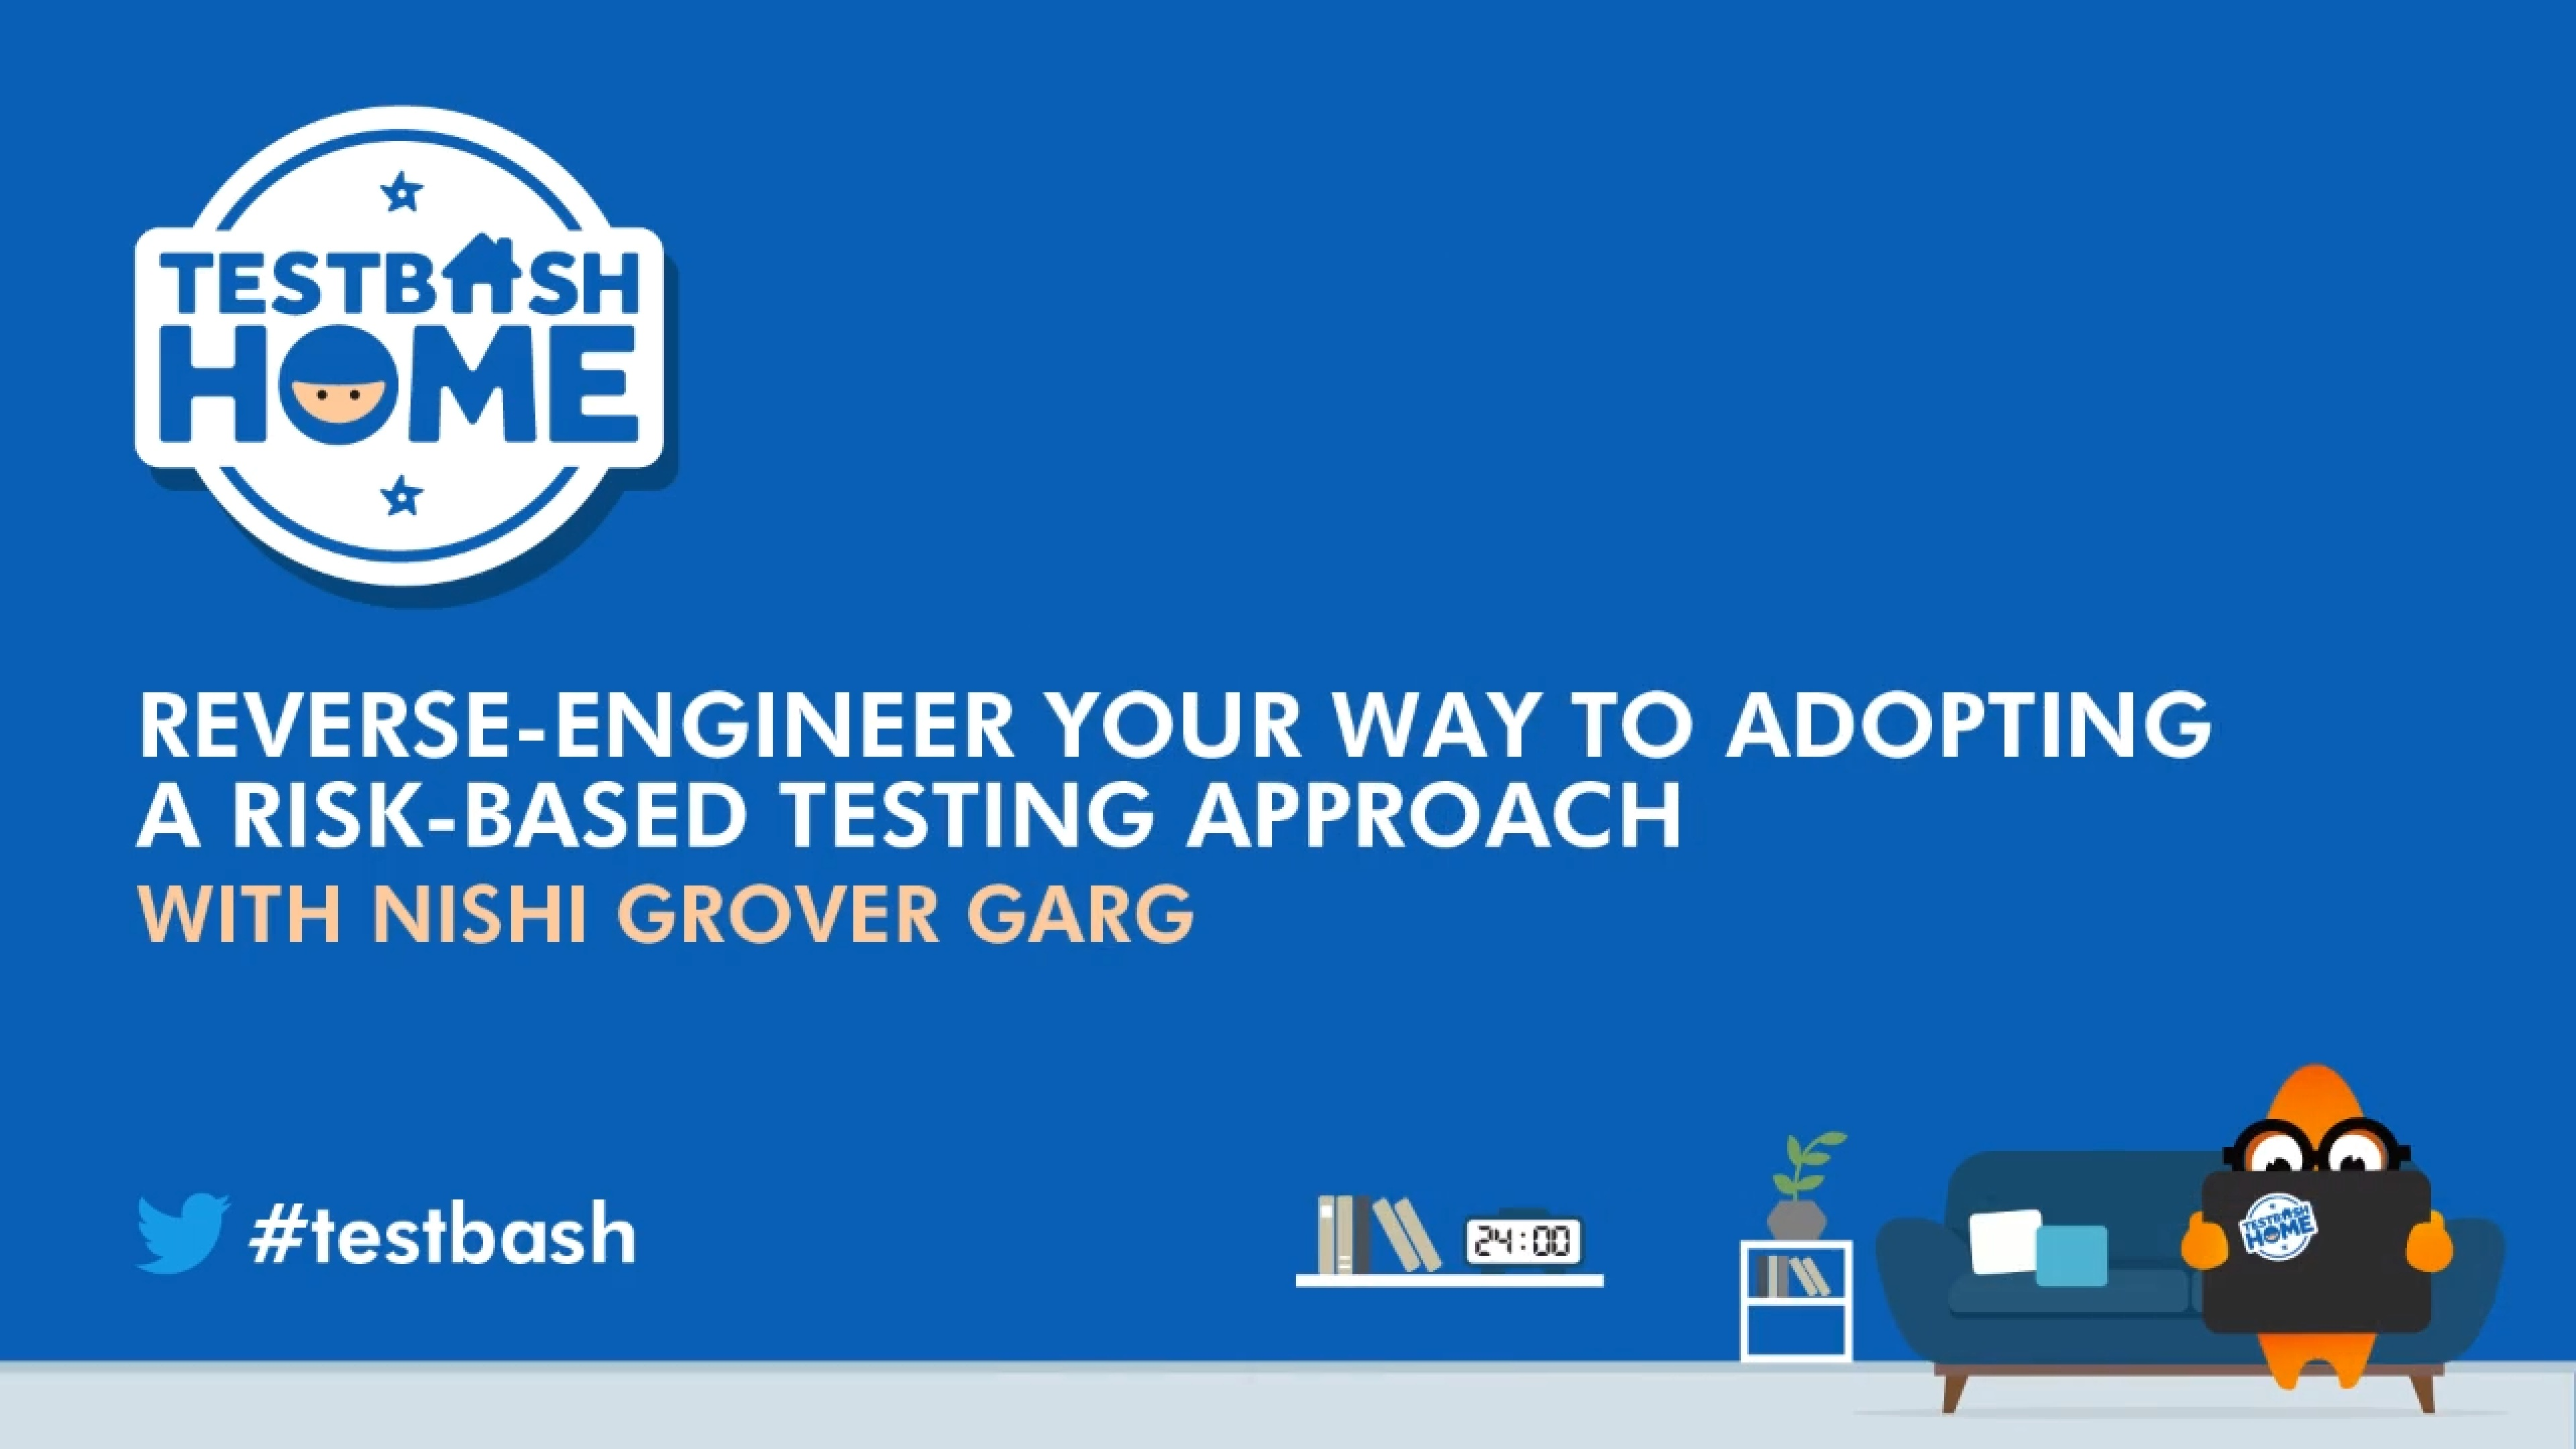 Reverse Engineer Your Way to Adopting a Risk-based Testing Approach - Nishi Grover Garg